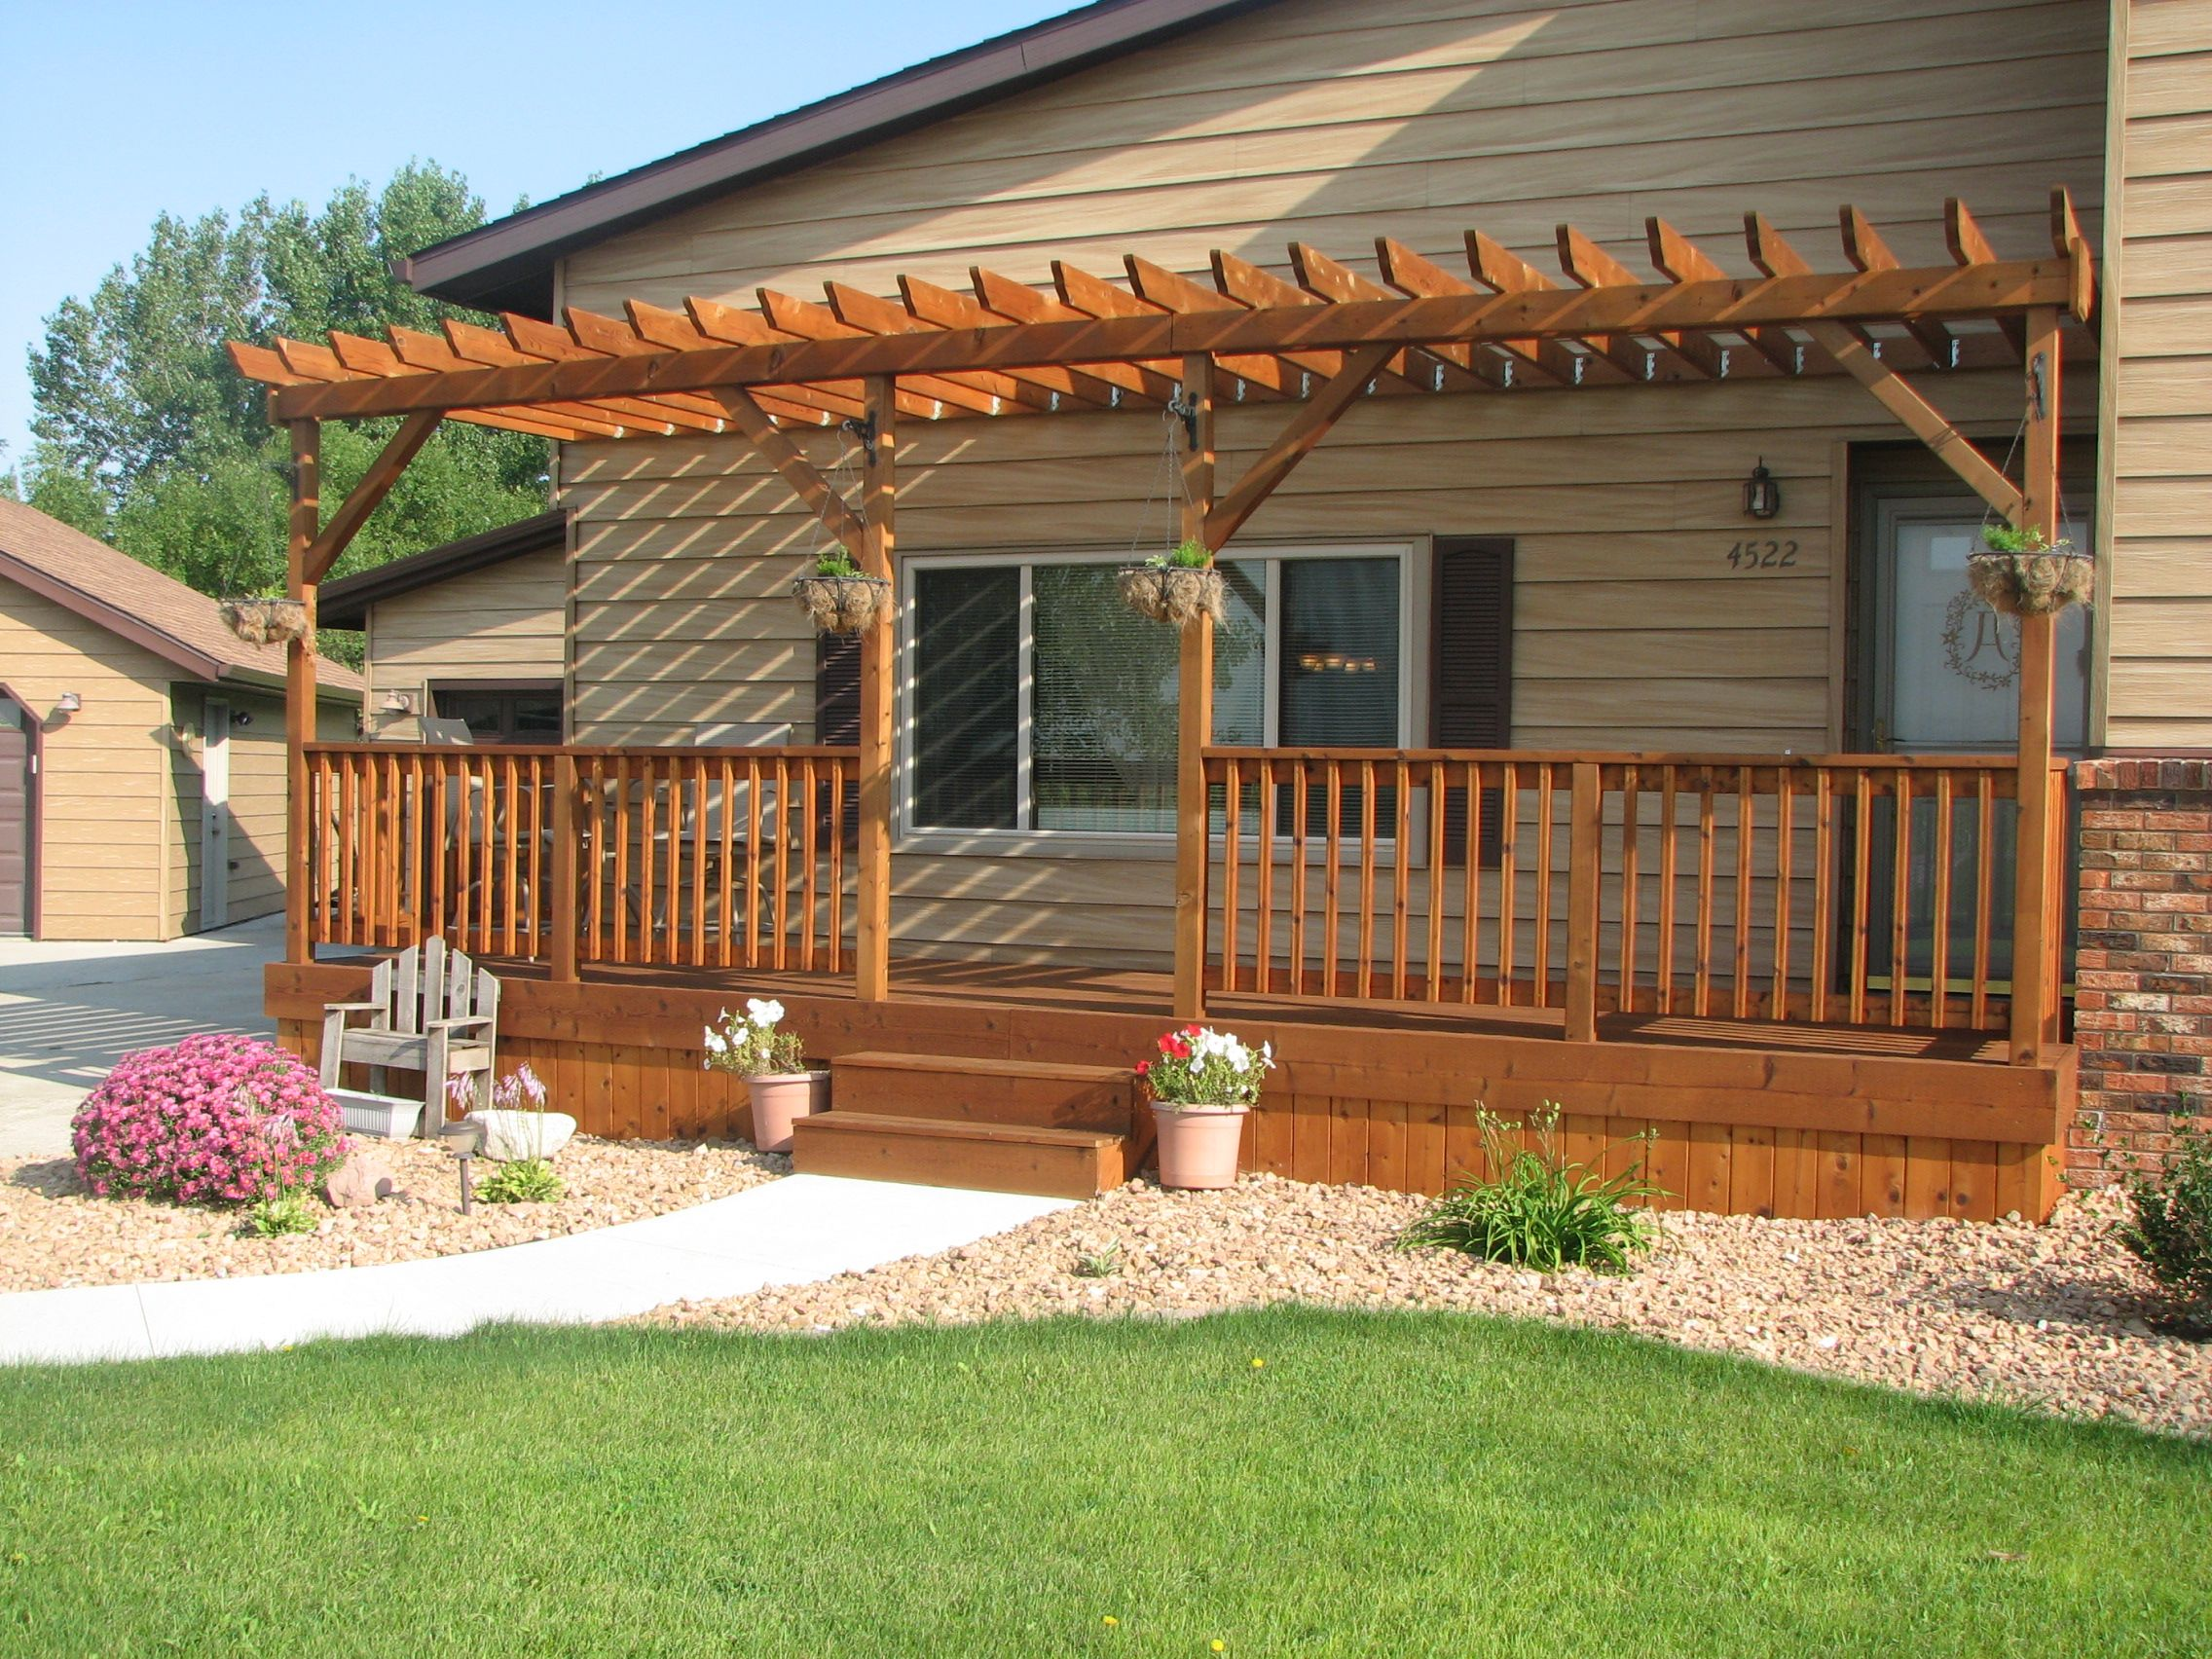 Dreaming is free front porch pergola pergola ideas and for Patio porch designs